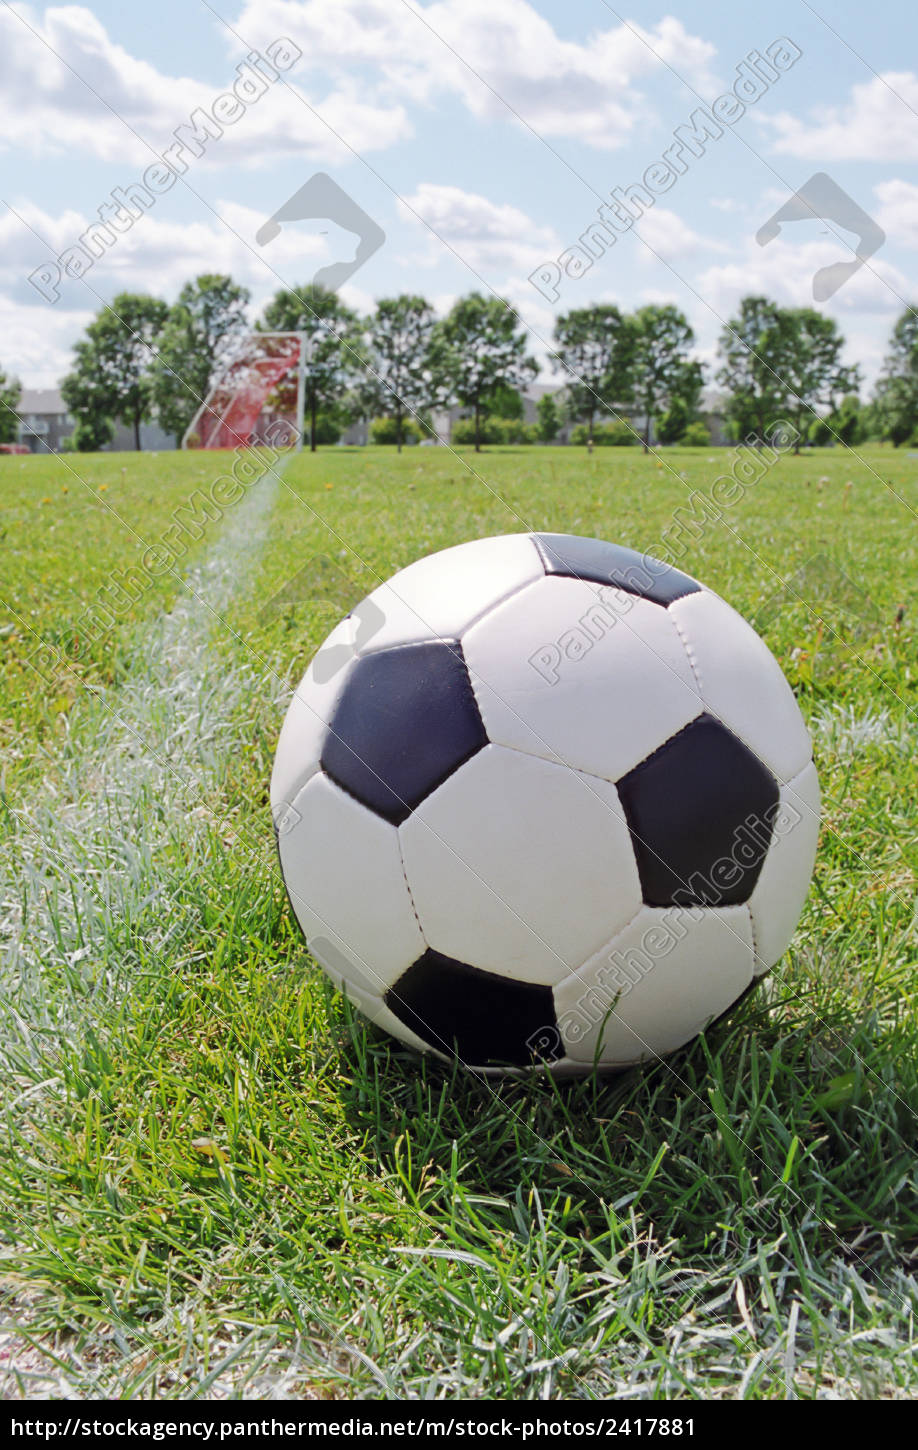 552a7974a Soccer ball on the pitch field with goal in background - Stock Photo ...